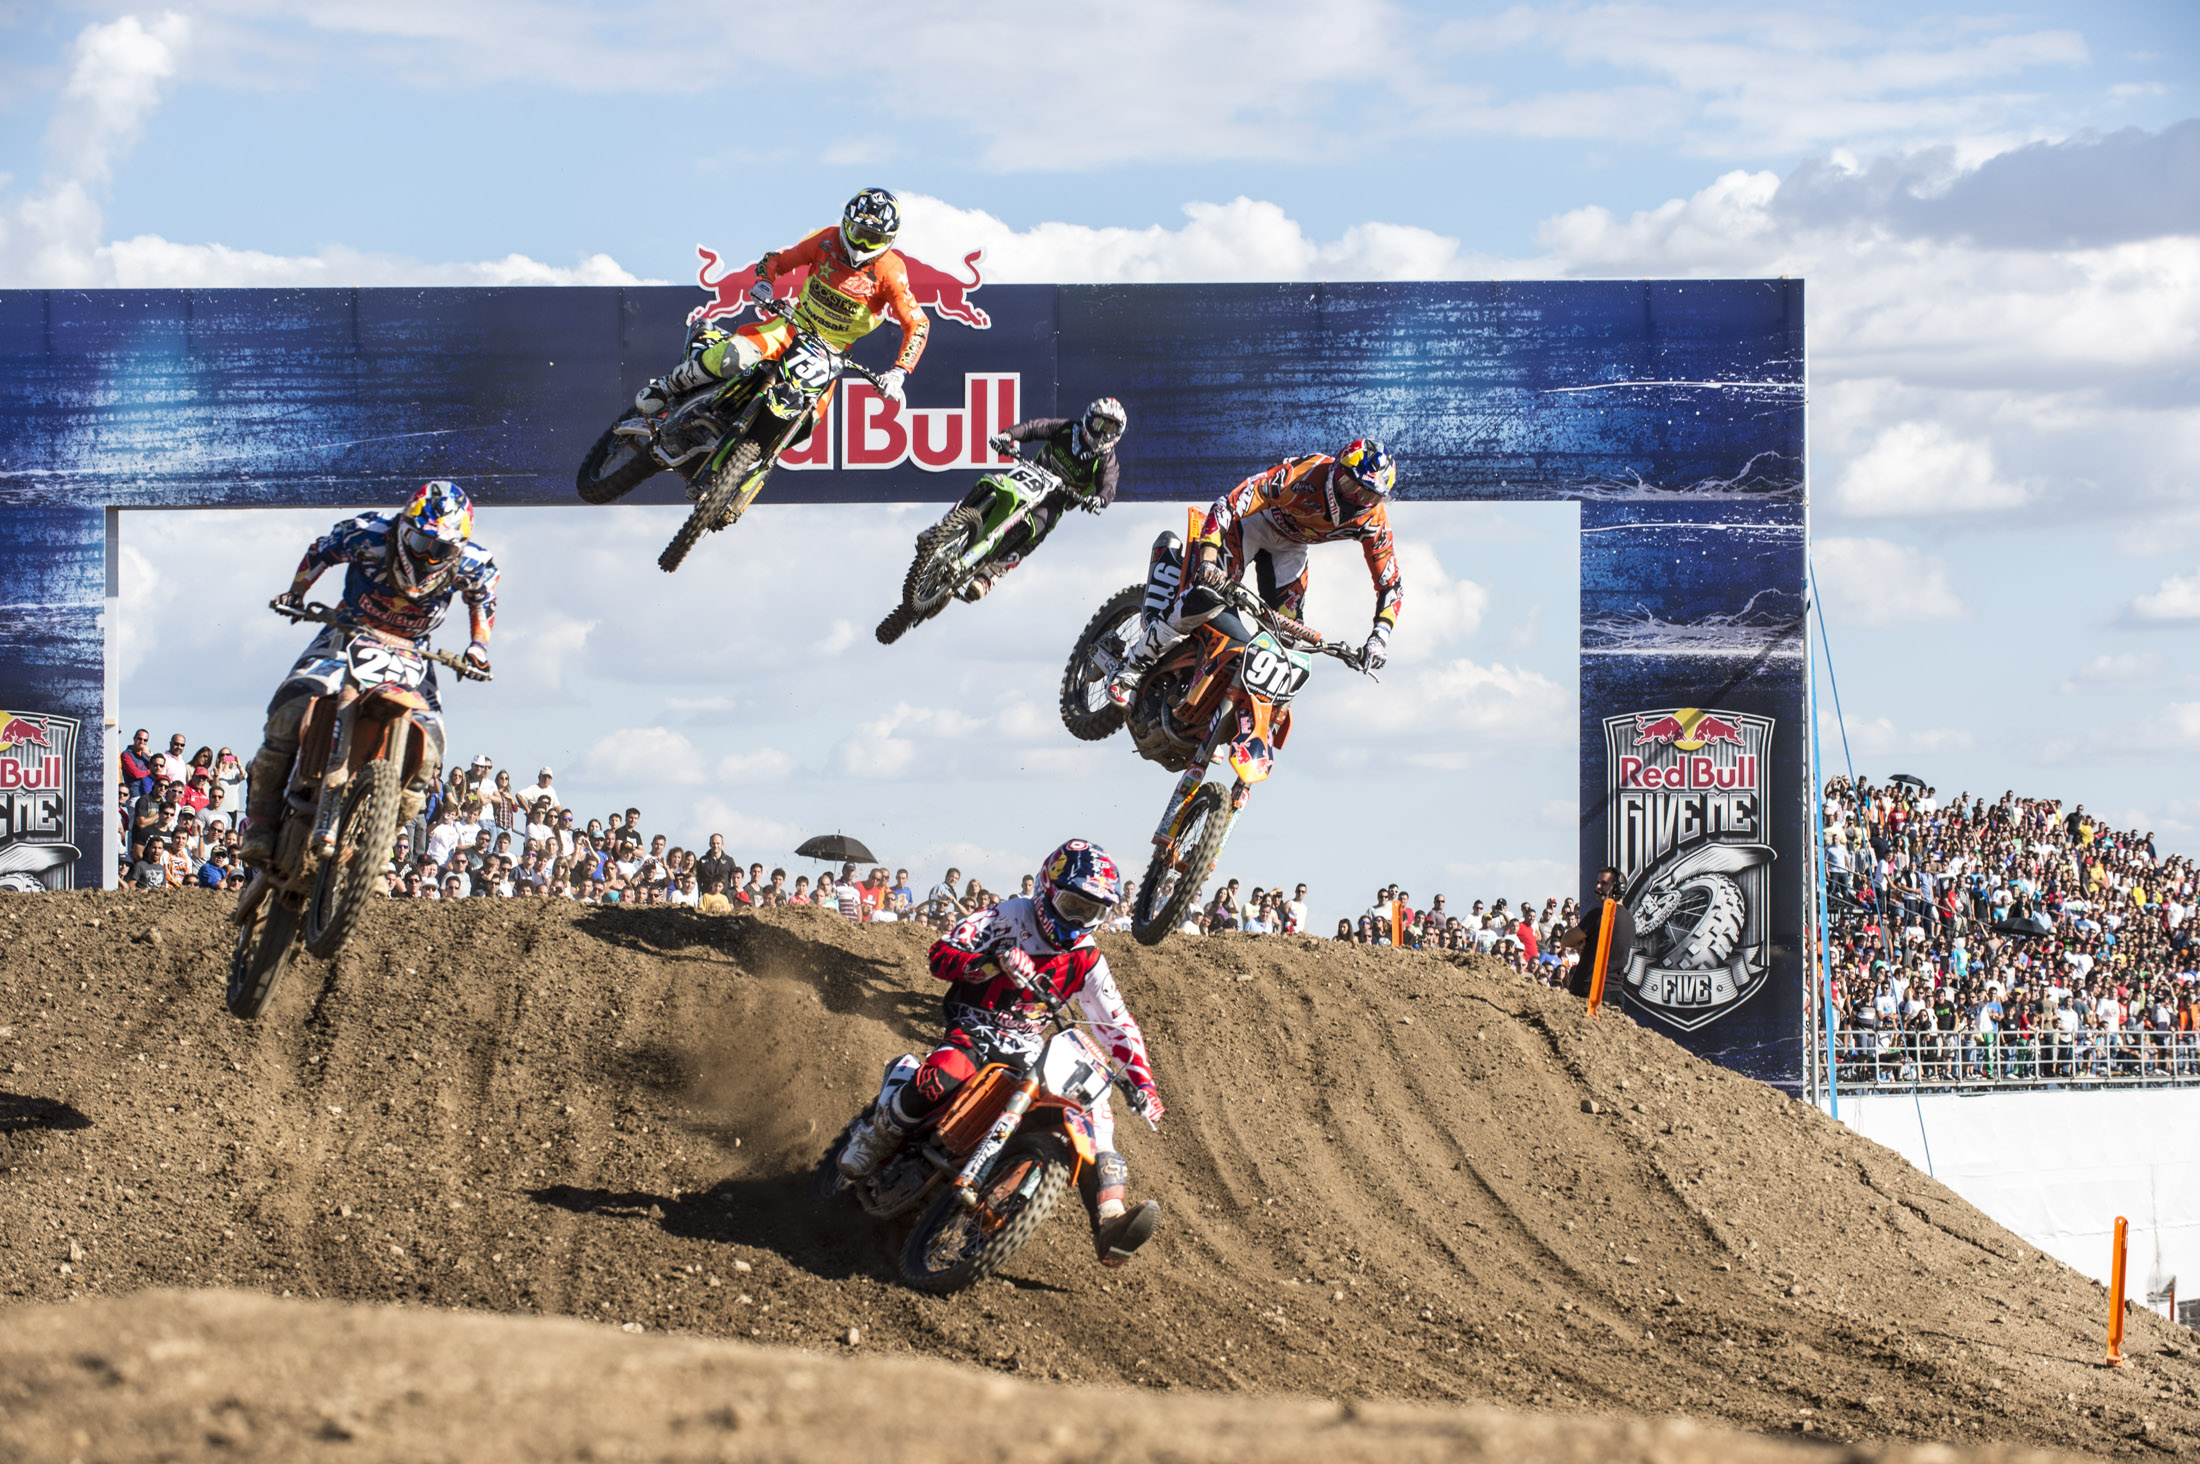 Red Bull Give Me Five 2013